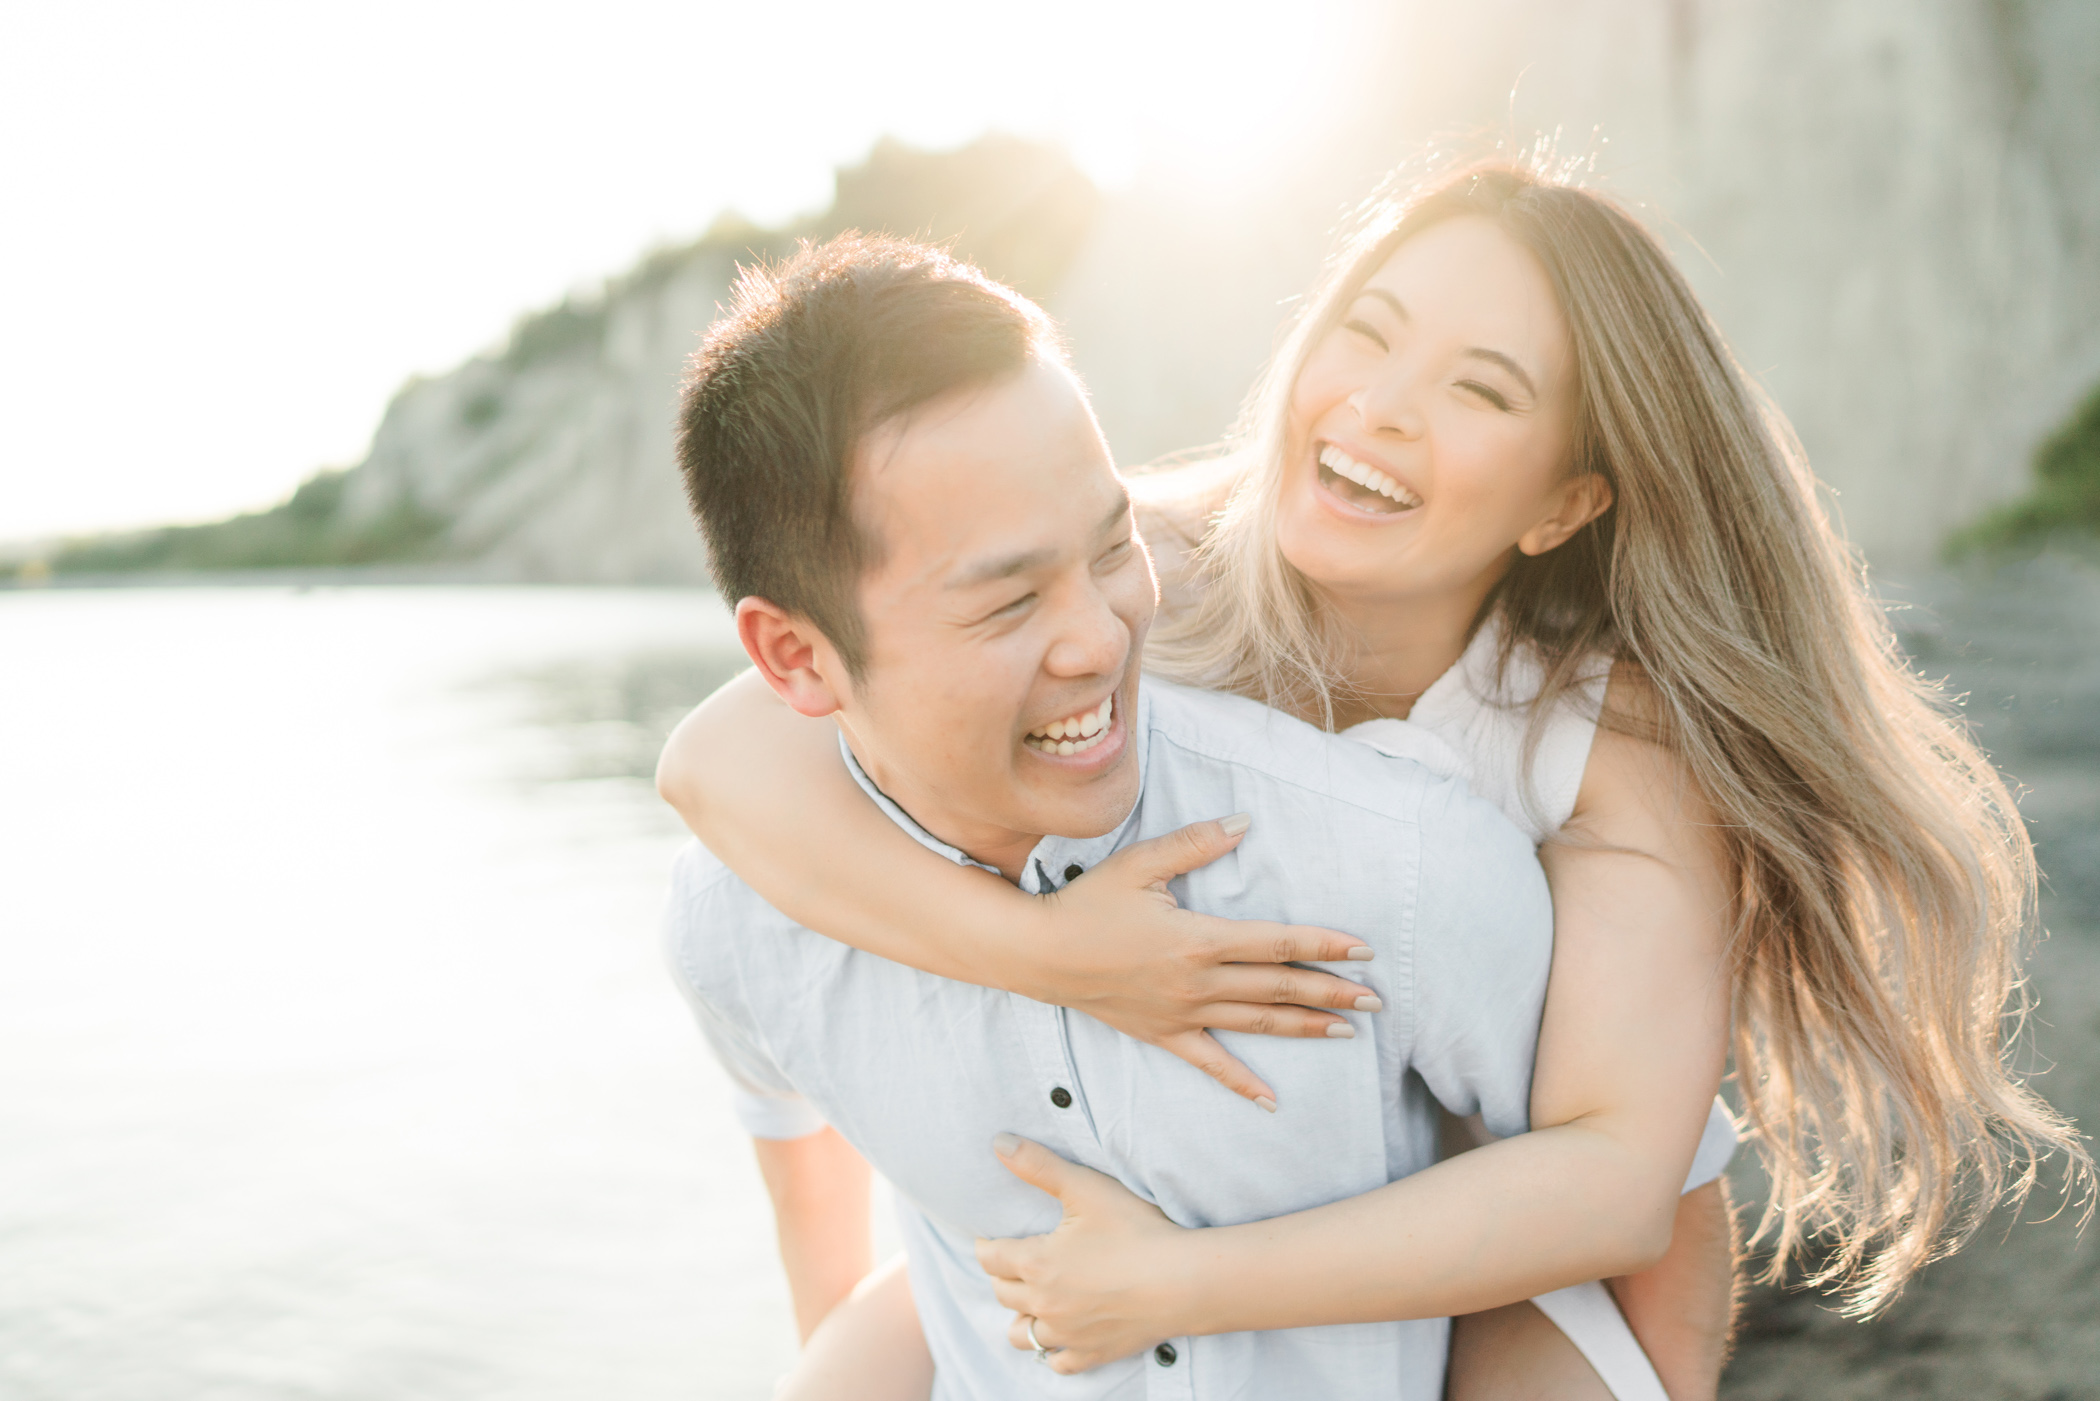 Scarborough_Bluffs_Toronto_Engagement_Photos_California_Los_Angeles_Miami_Ireland_Iceland-Rhythm_Photography-021.jpg